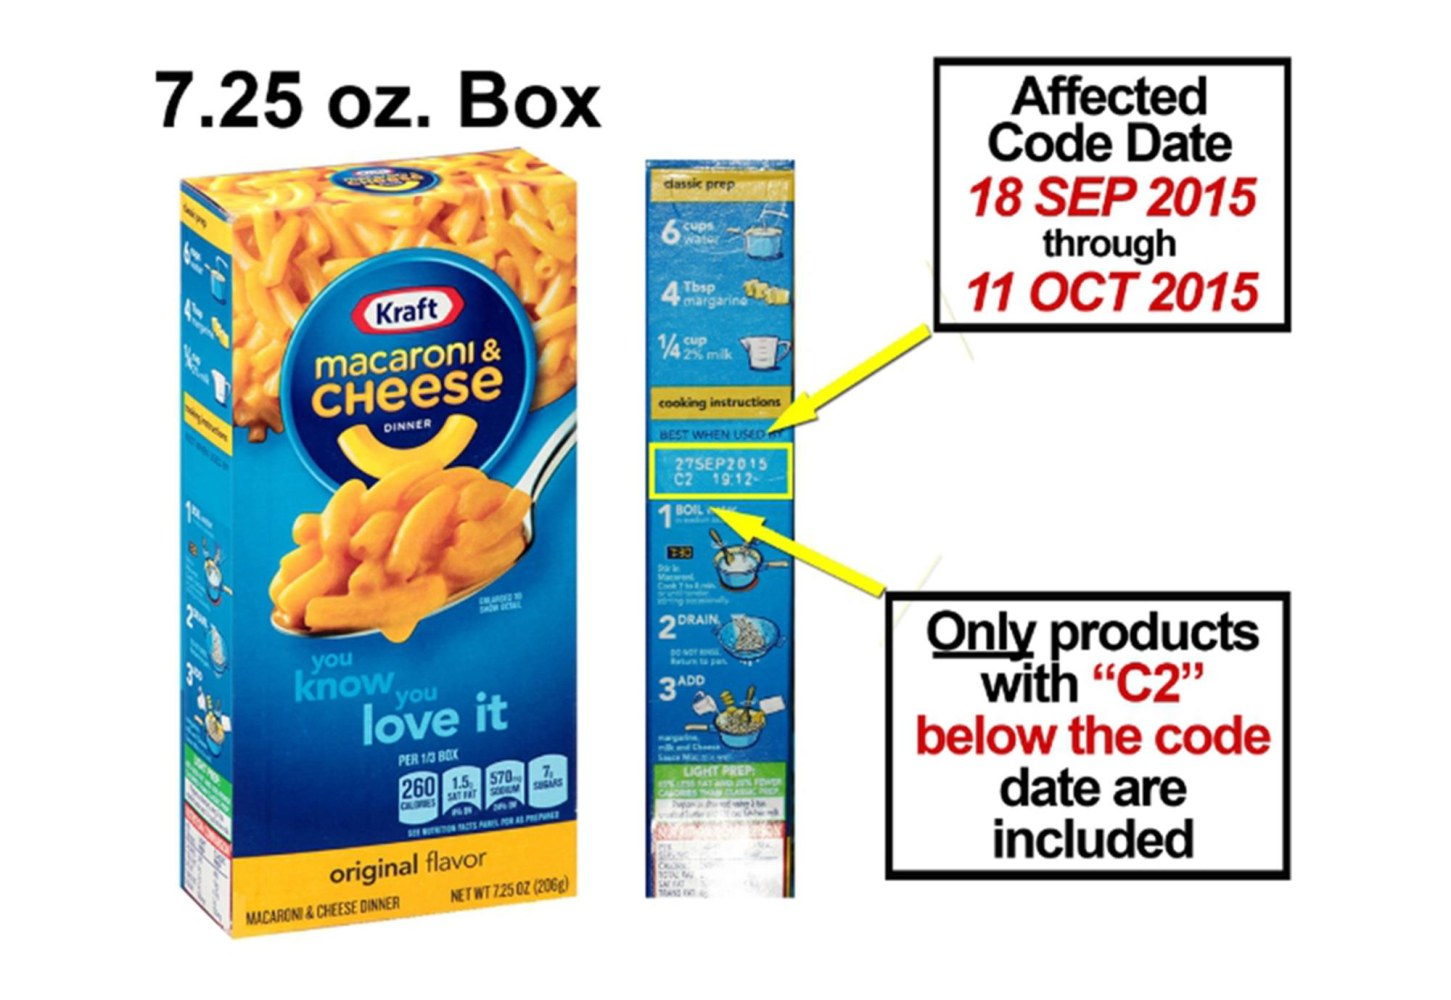 an introduction to kraft macaroni and cheese What brand of macaroni and cheese do consumers purchase by john bullock and karla given introduction also feel that kraft macaroni and cheese tasted better.